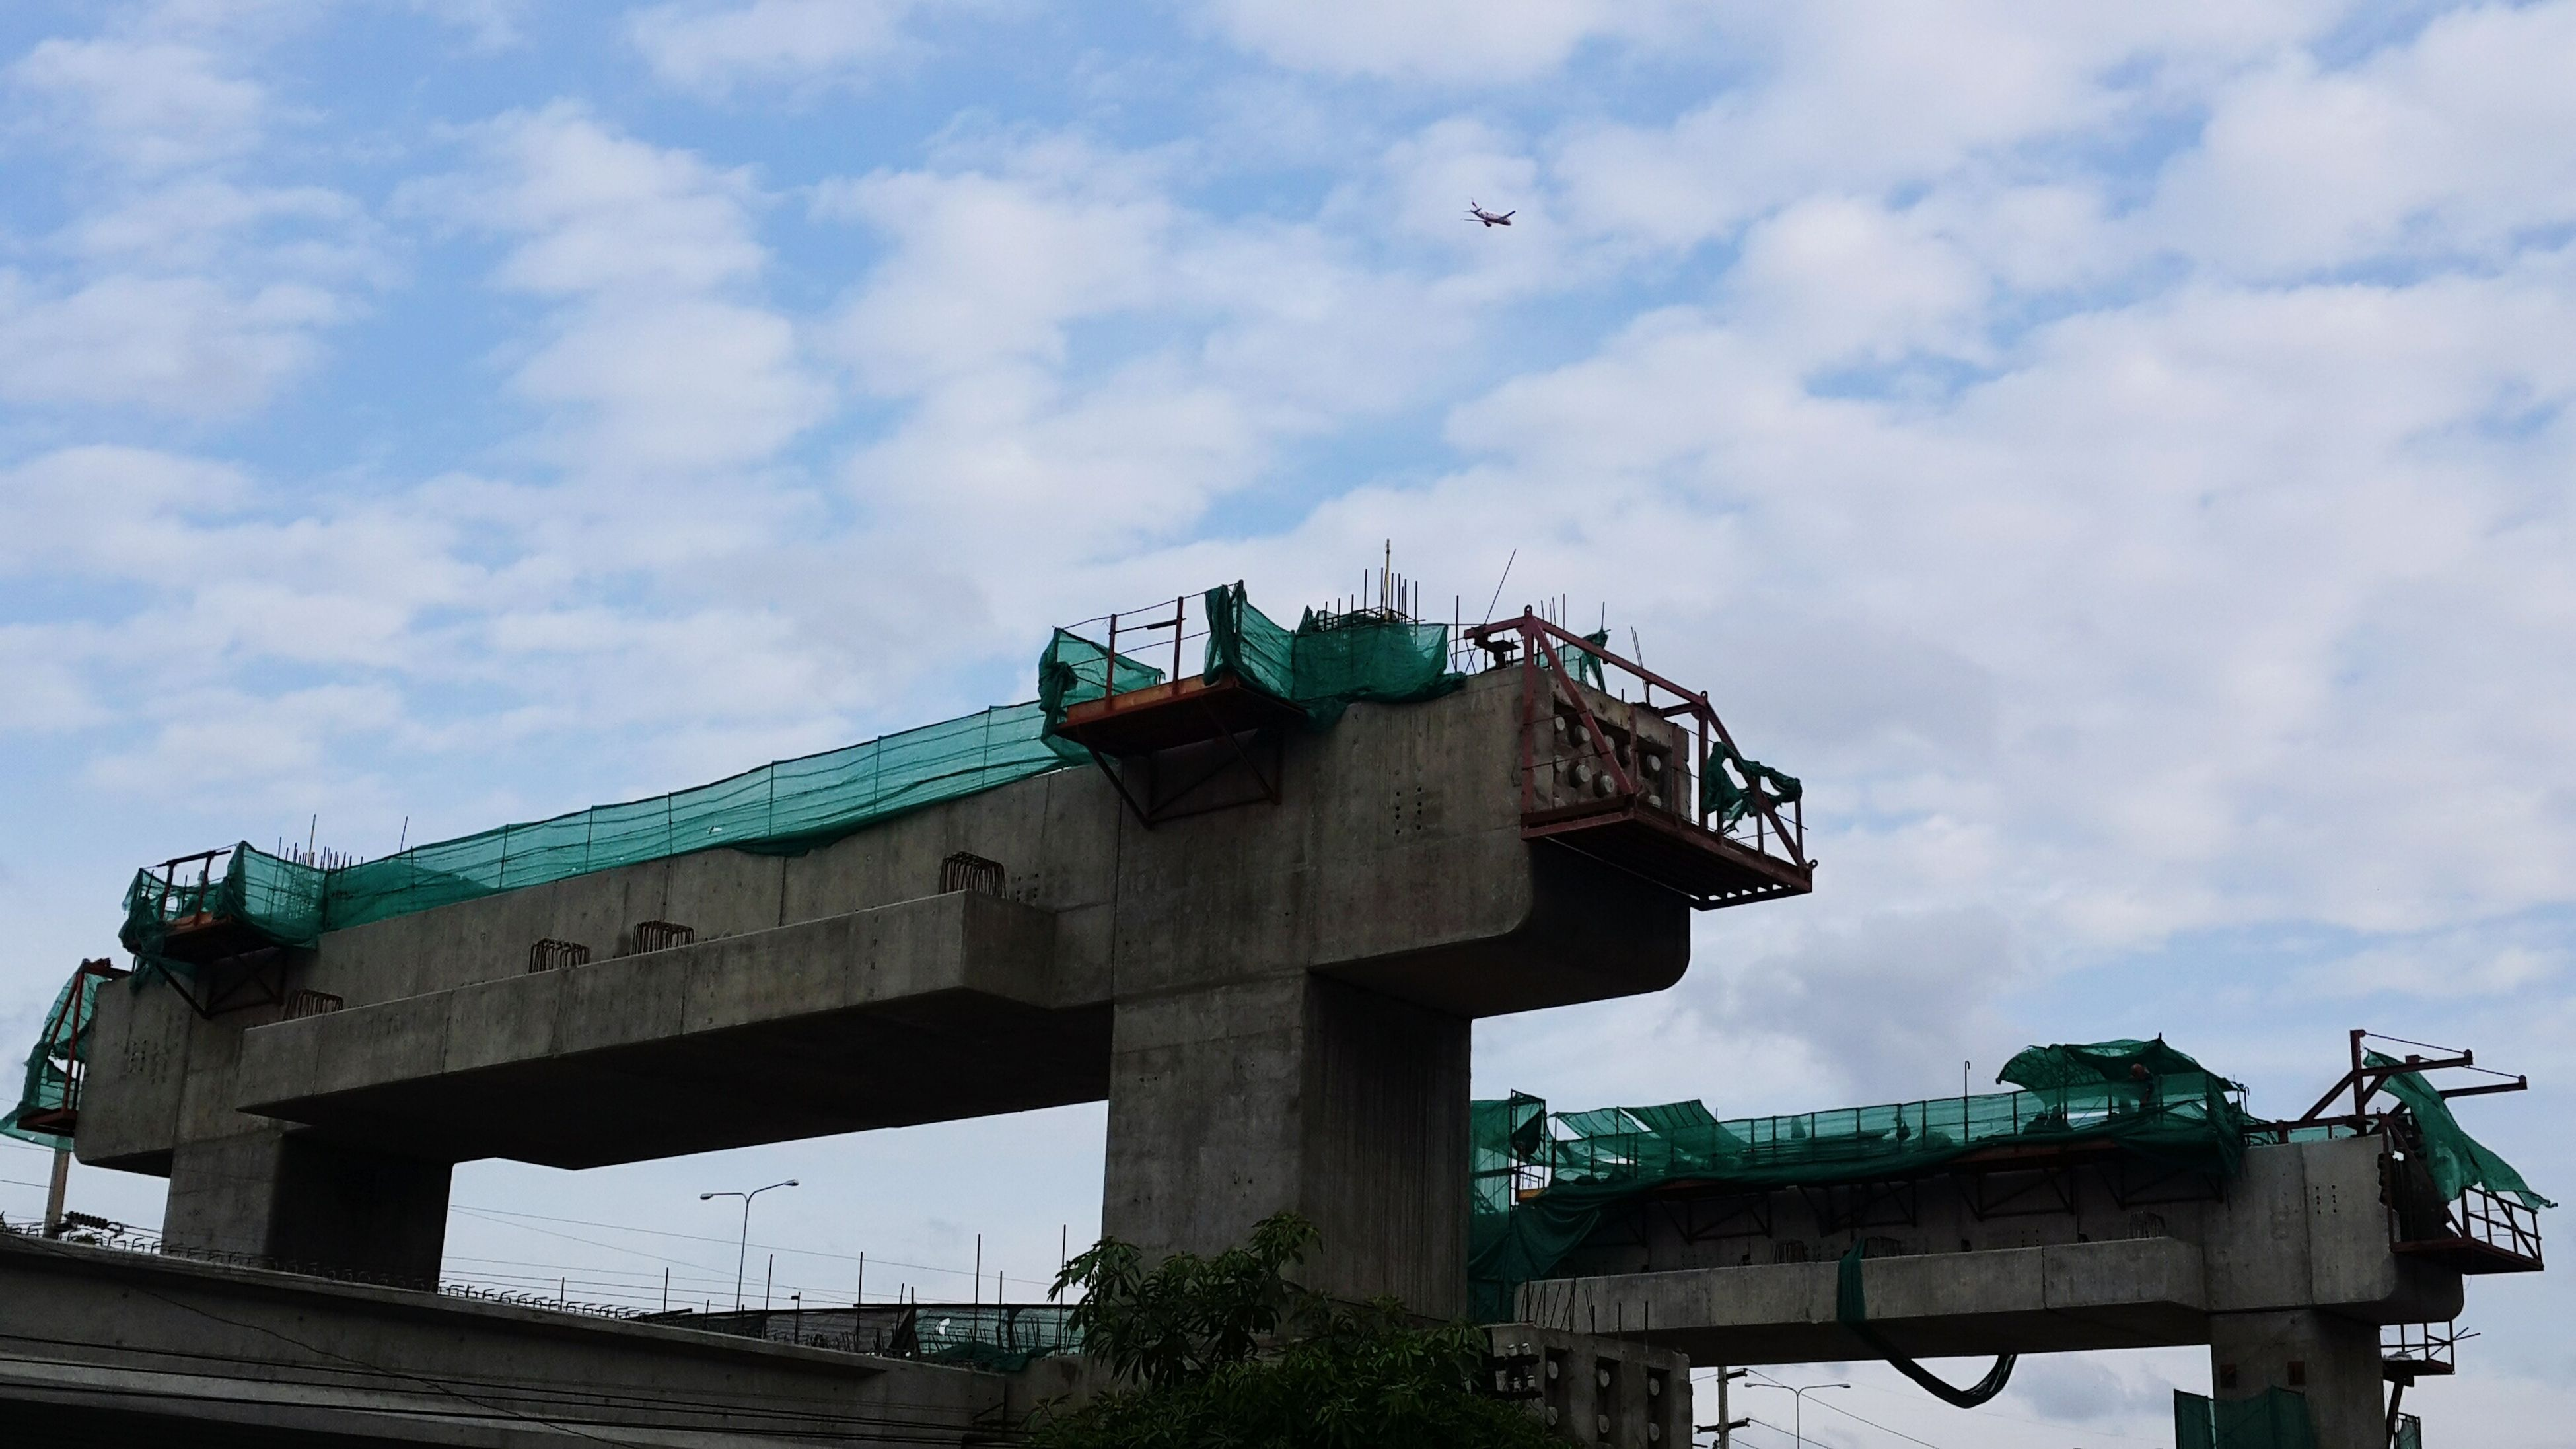 low angle view, sky, built structure, architecture, transportation, bridge - man made structure, cloud - sky, connection, building exterior, cloud, outdoors, day, mode of transport, cloudy, engineering, railing, no people, bird, crane - construction machinery, bridge